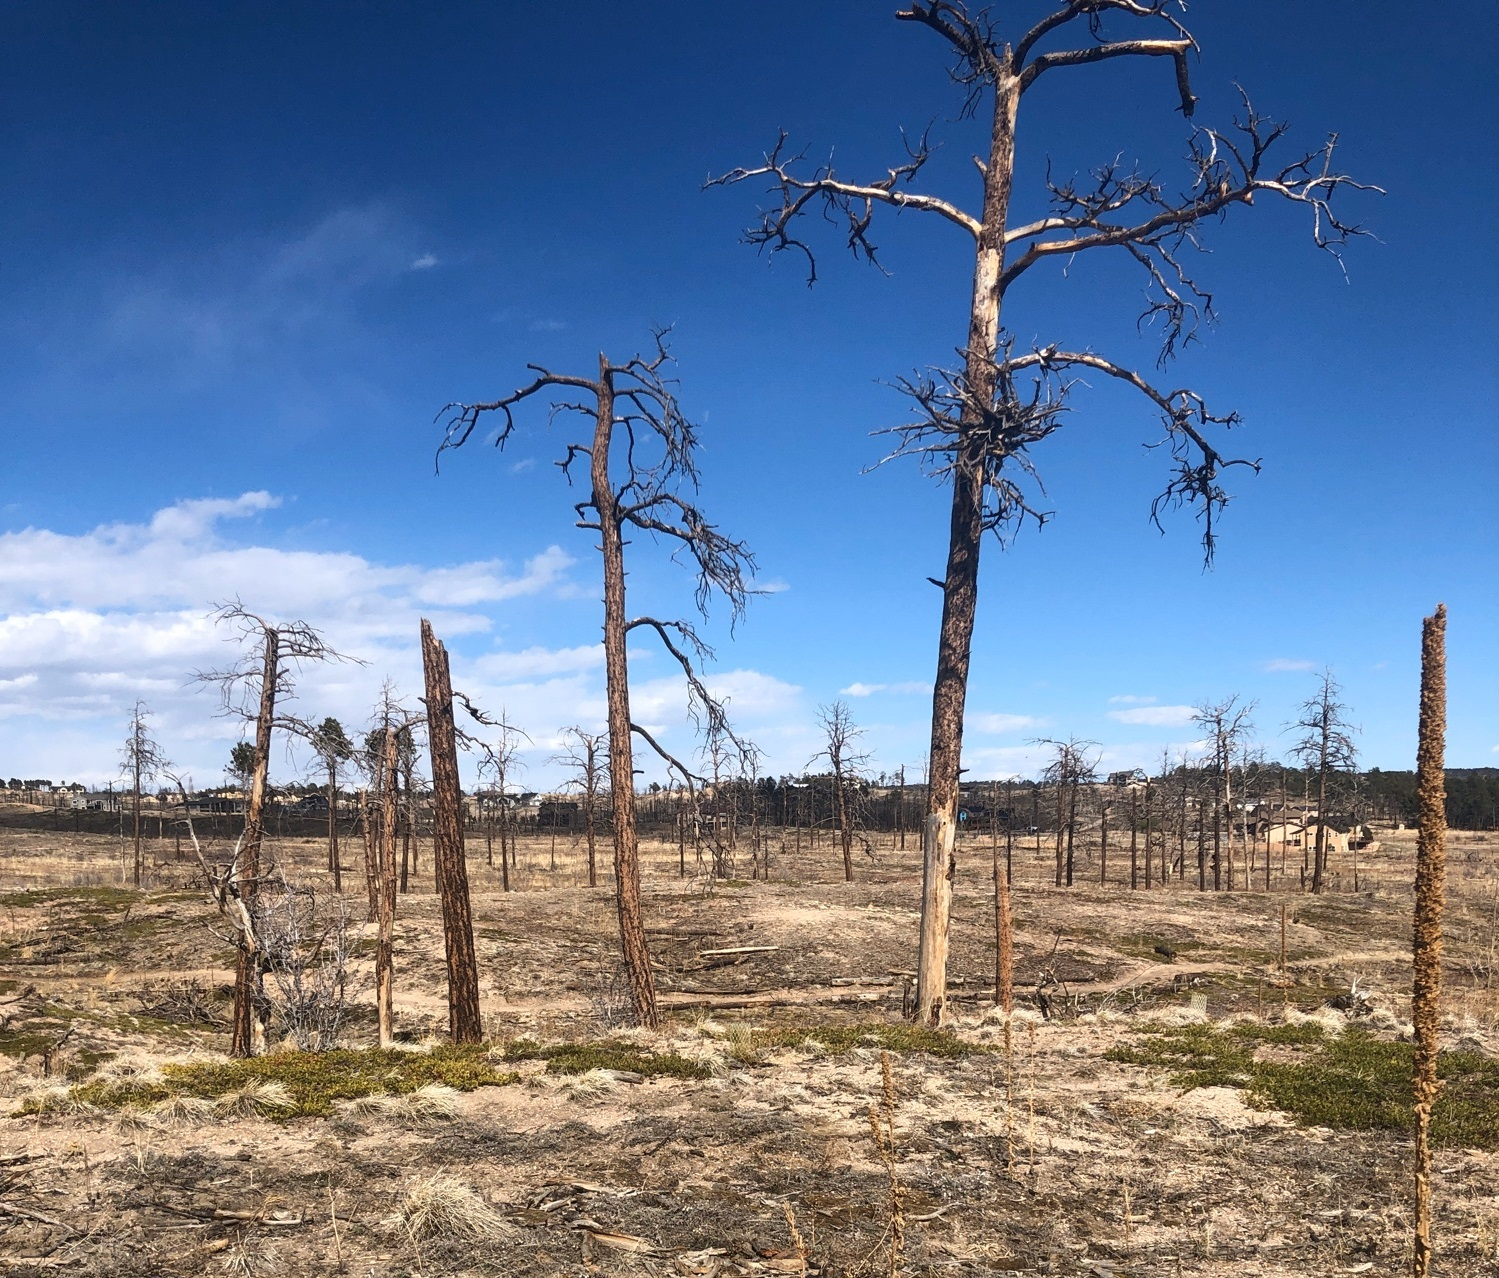 A wildfire in 2014 changed the landscape of Black Forest Regional Park.